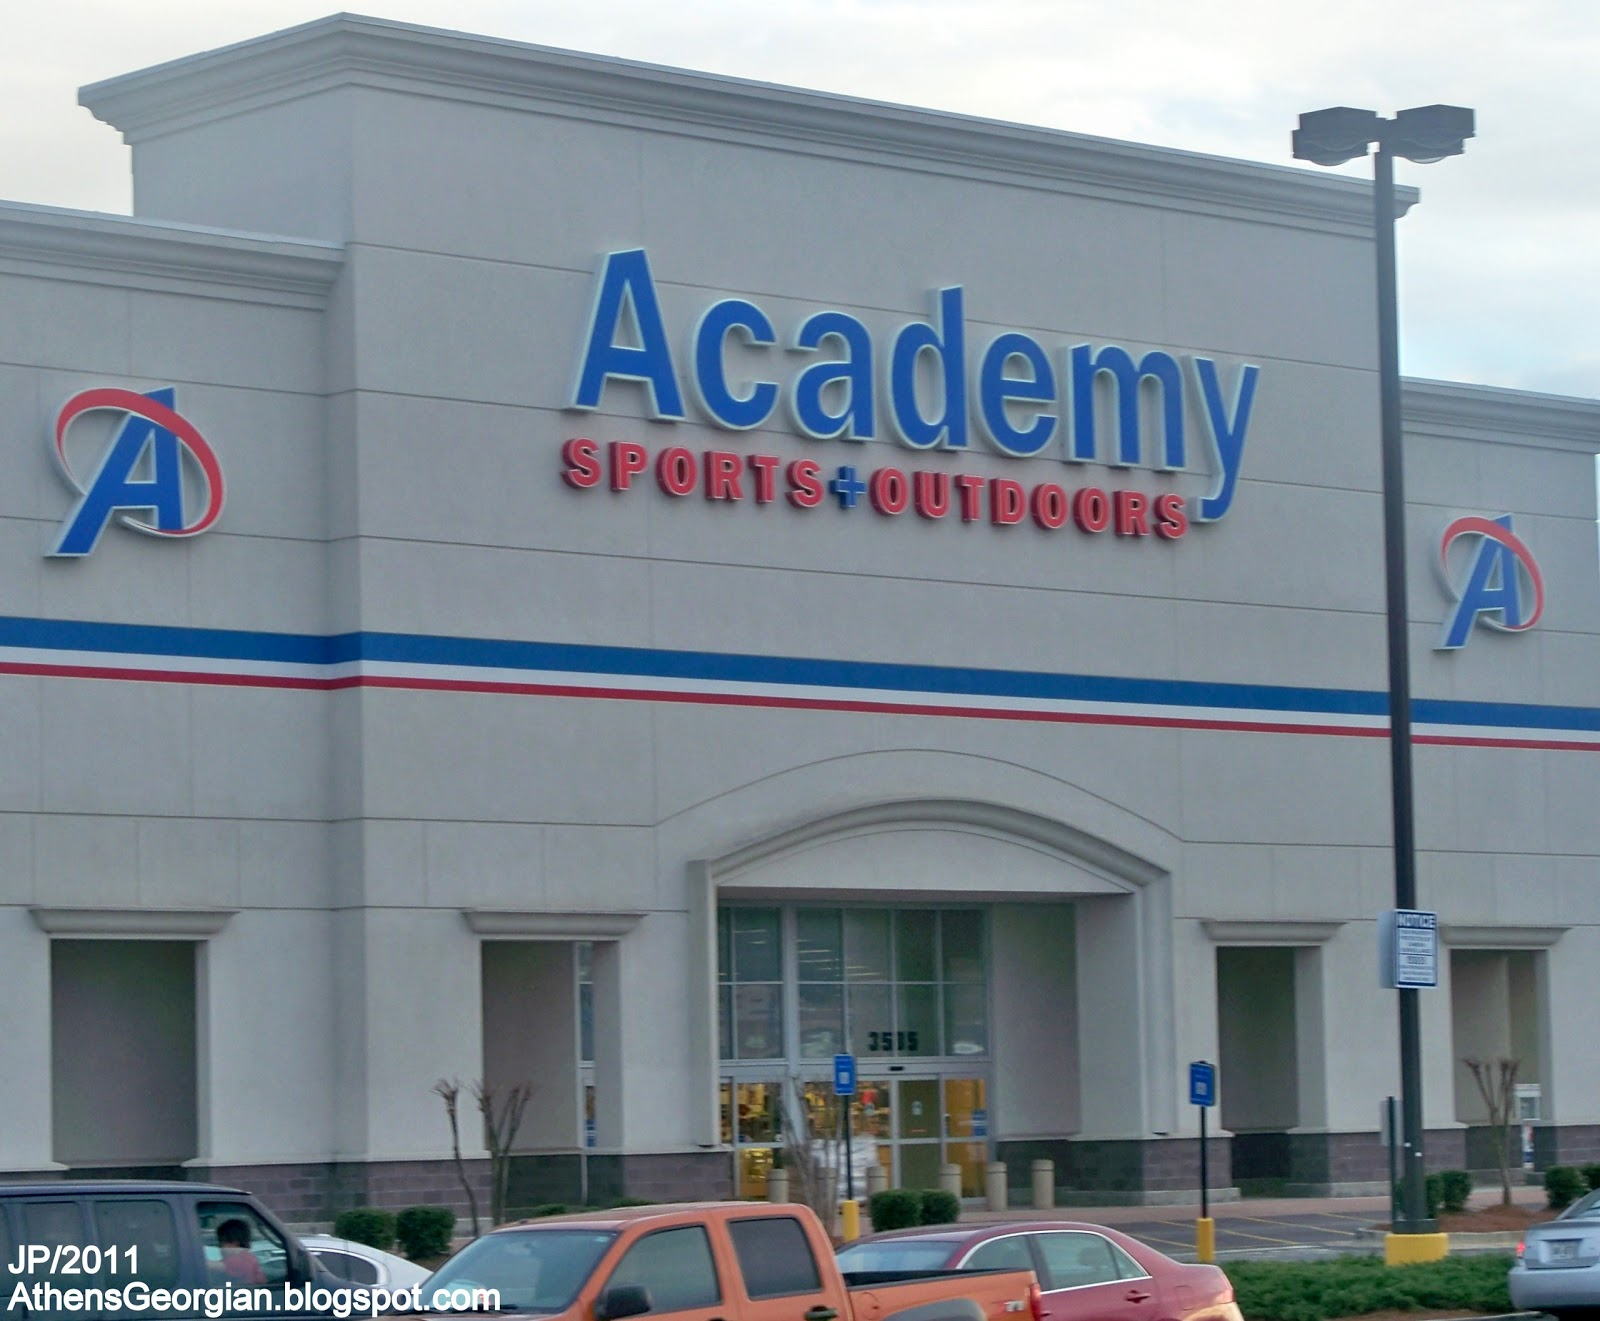 Academy Sports + Outdoors Coupon Codes, Promos & Sales. For Academy coupon codes and sales, just follow this link to the website to browse their current offerings.